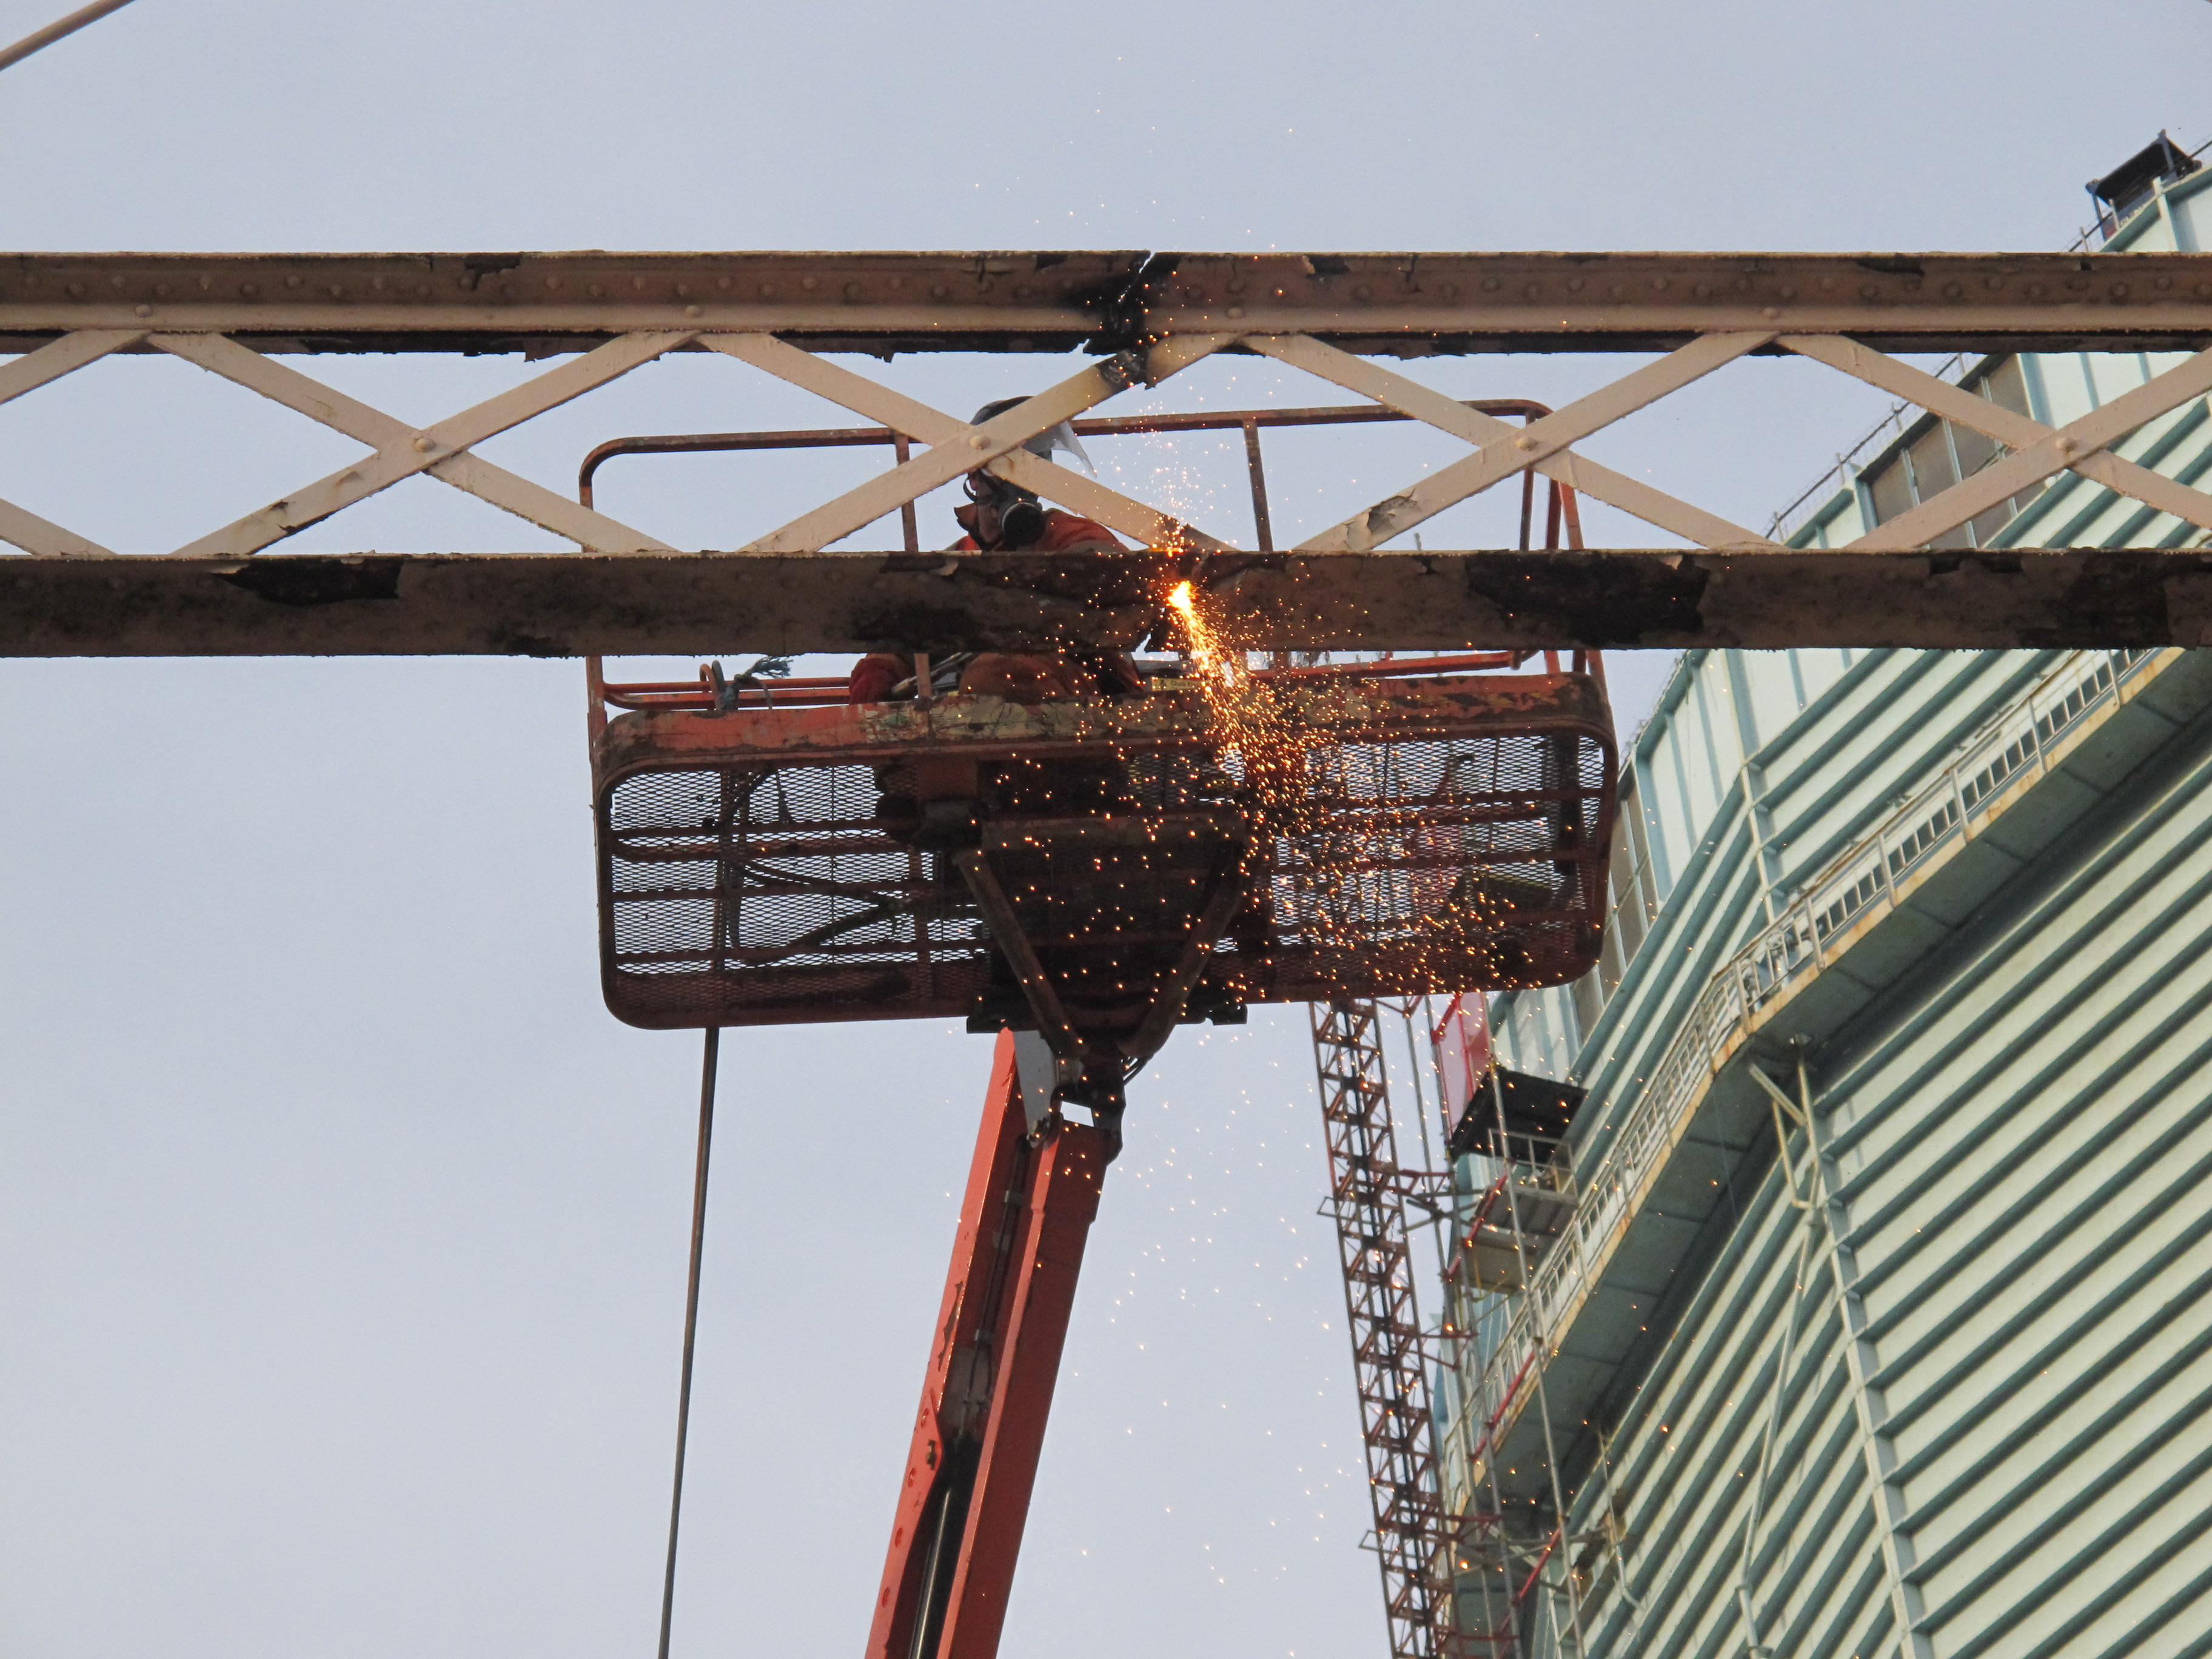 Dismantling the Morton gasholder, cutting through, 9 Dec 2014. � Sarah Timewell